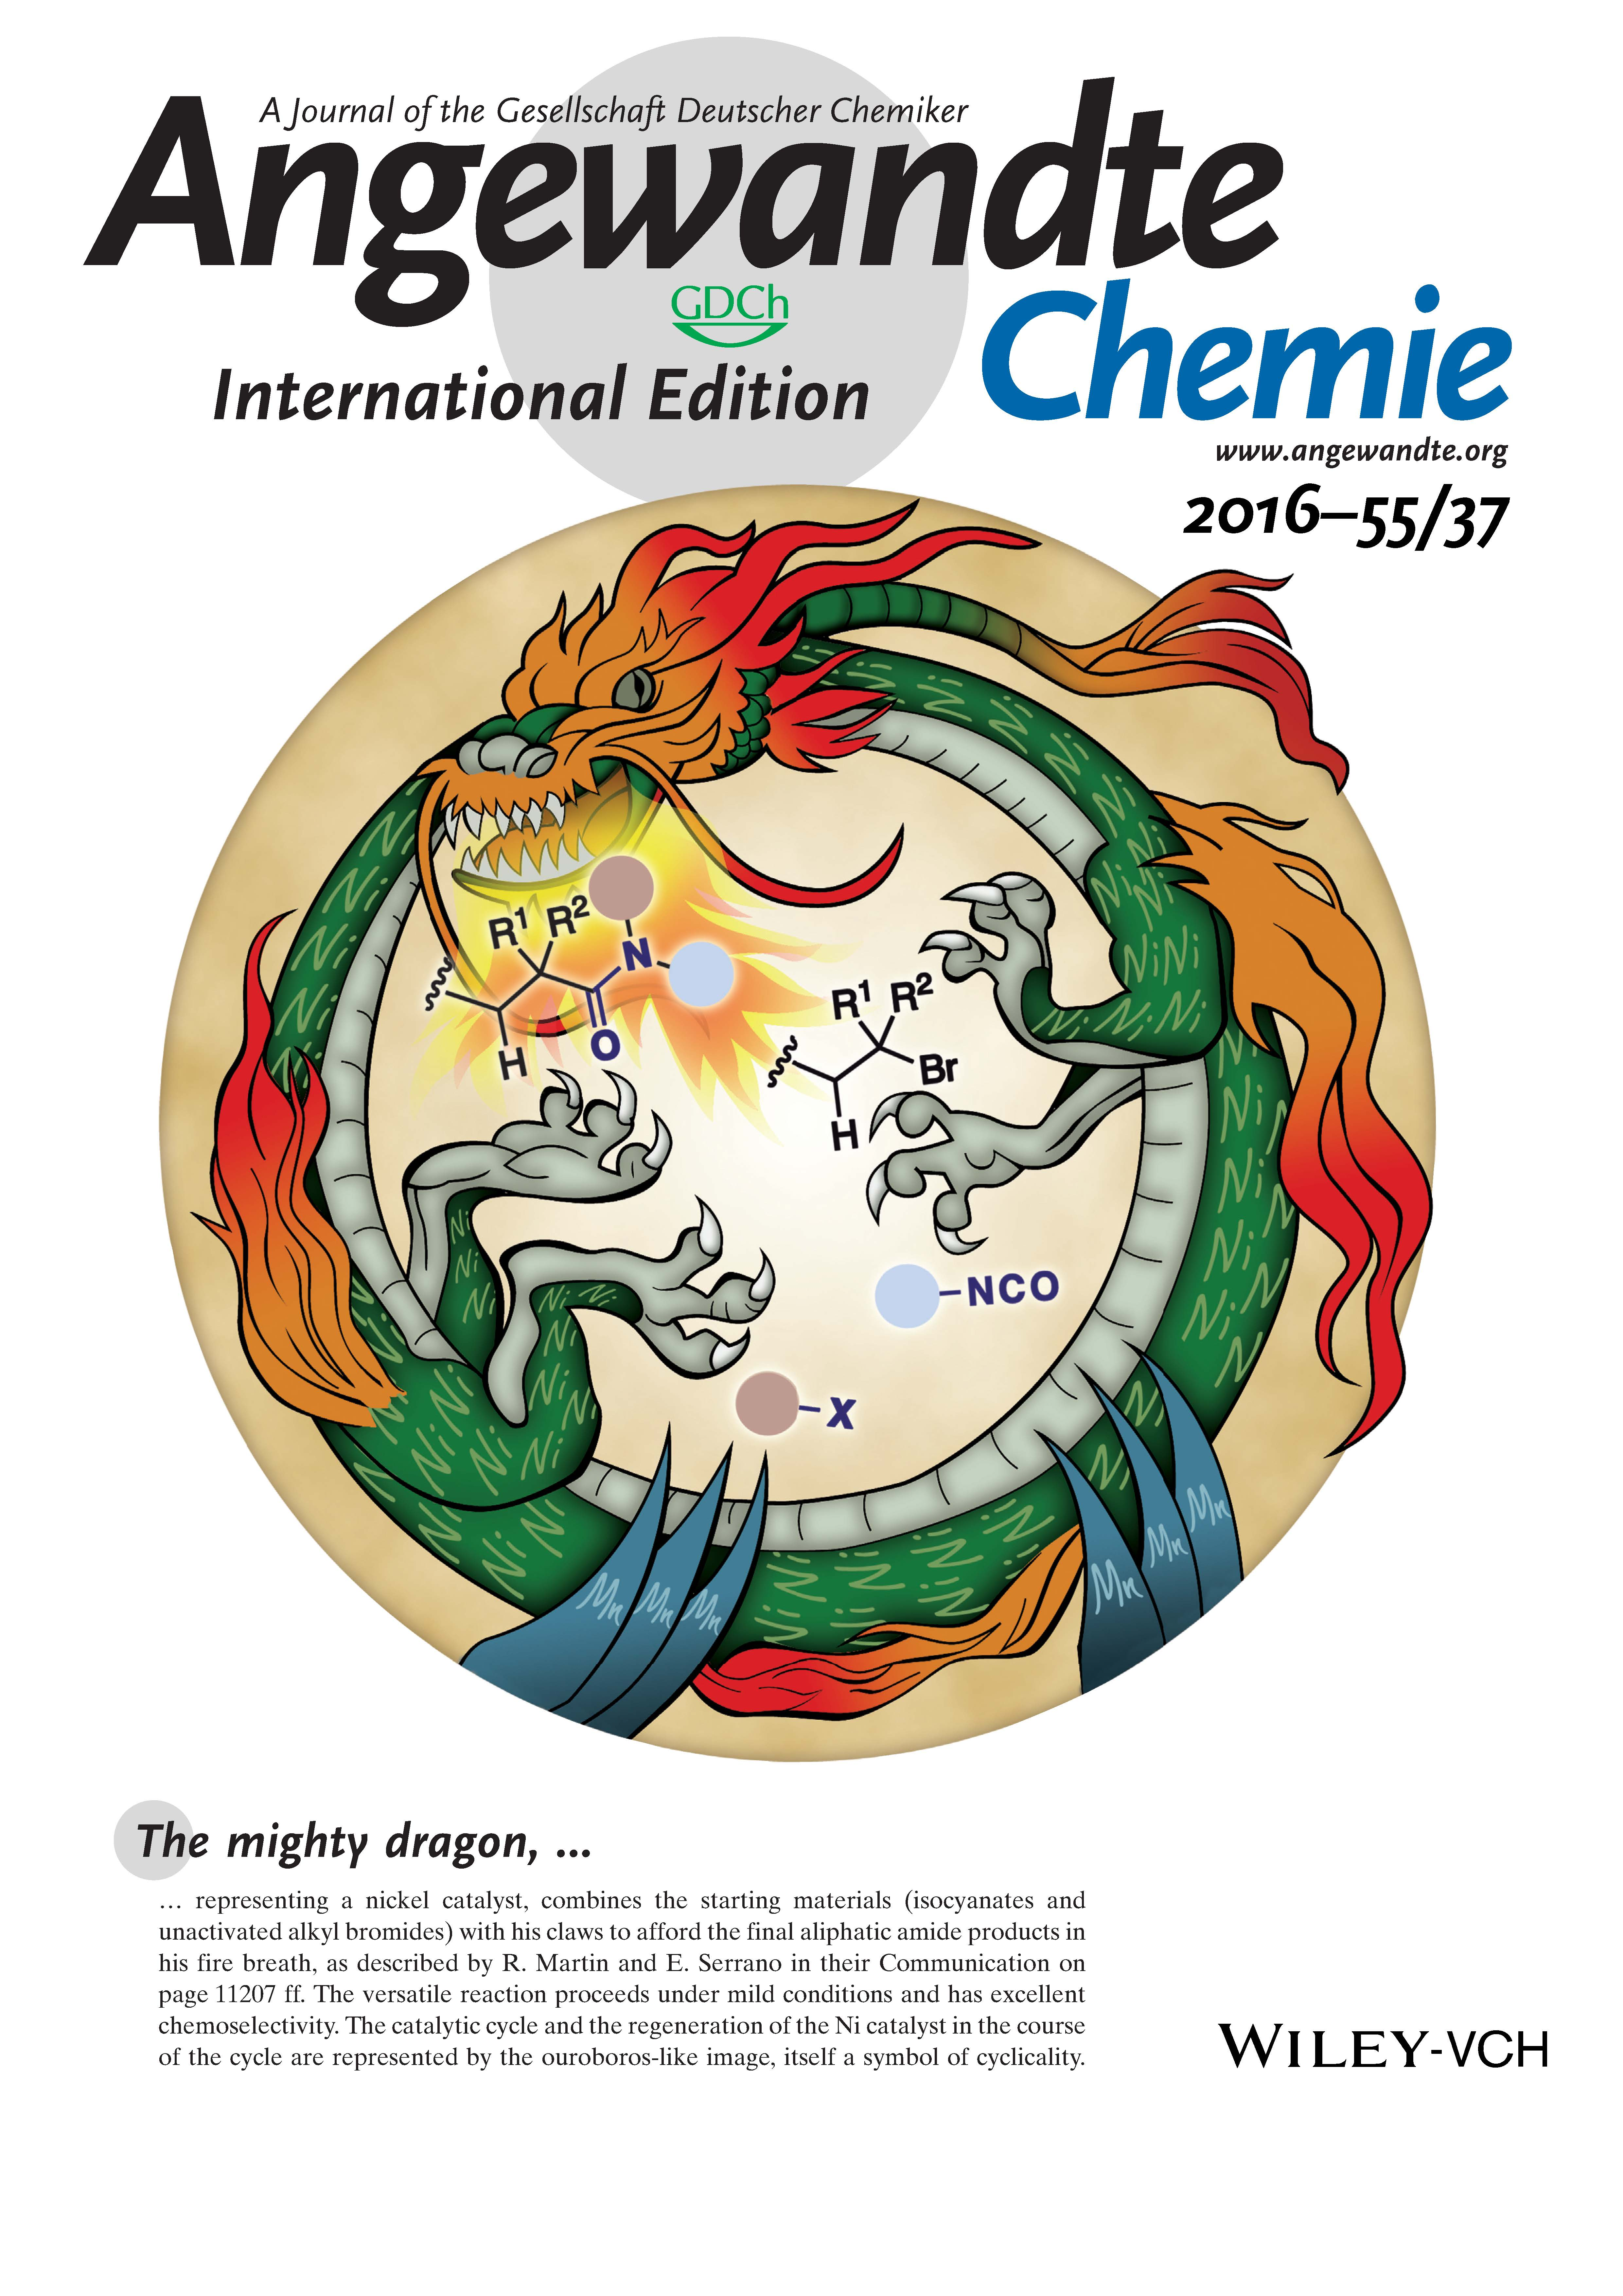 Serrano_et_al-2016-Angewandte_Chemie_International_Edition copy